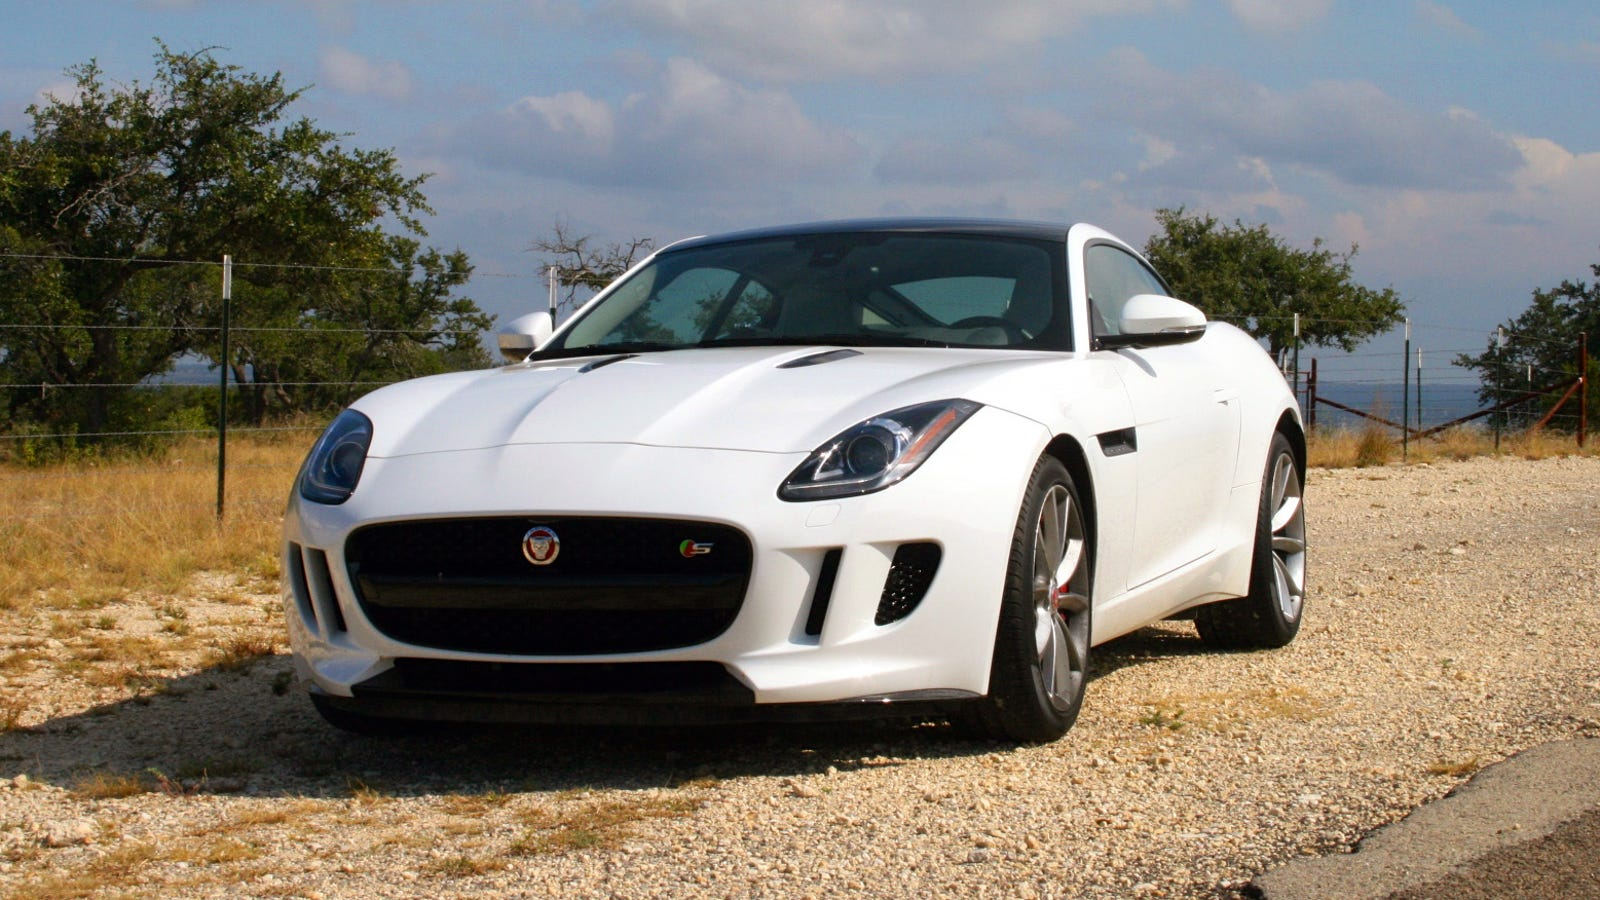 2015 Jaguar F-Type S Coupe: So Good It Almost Makes The V8